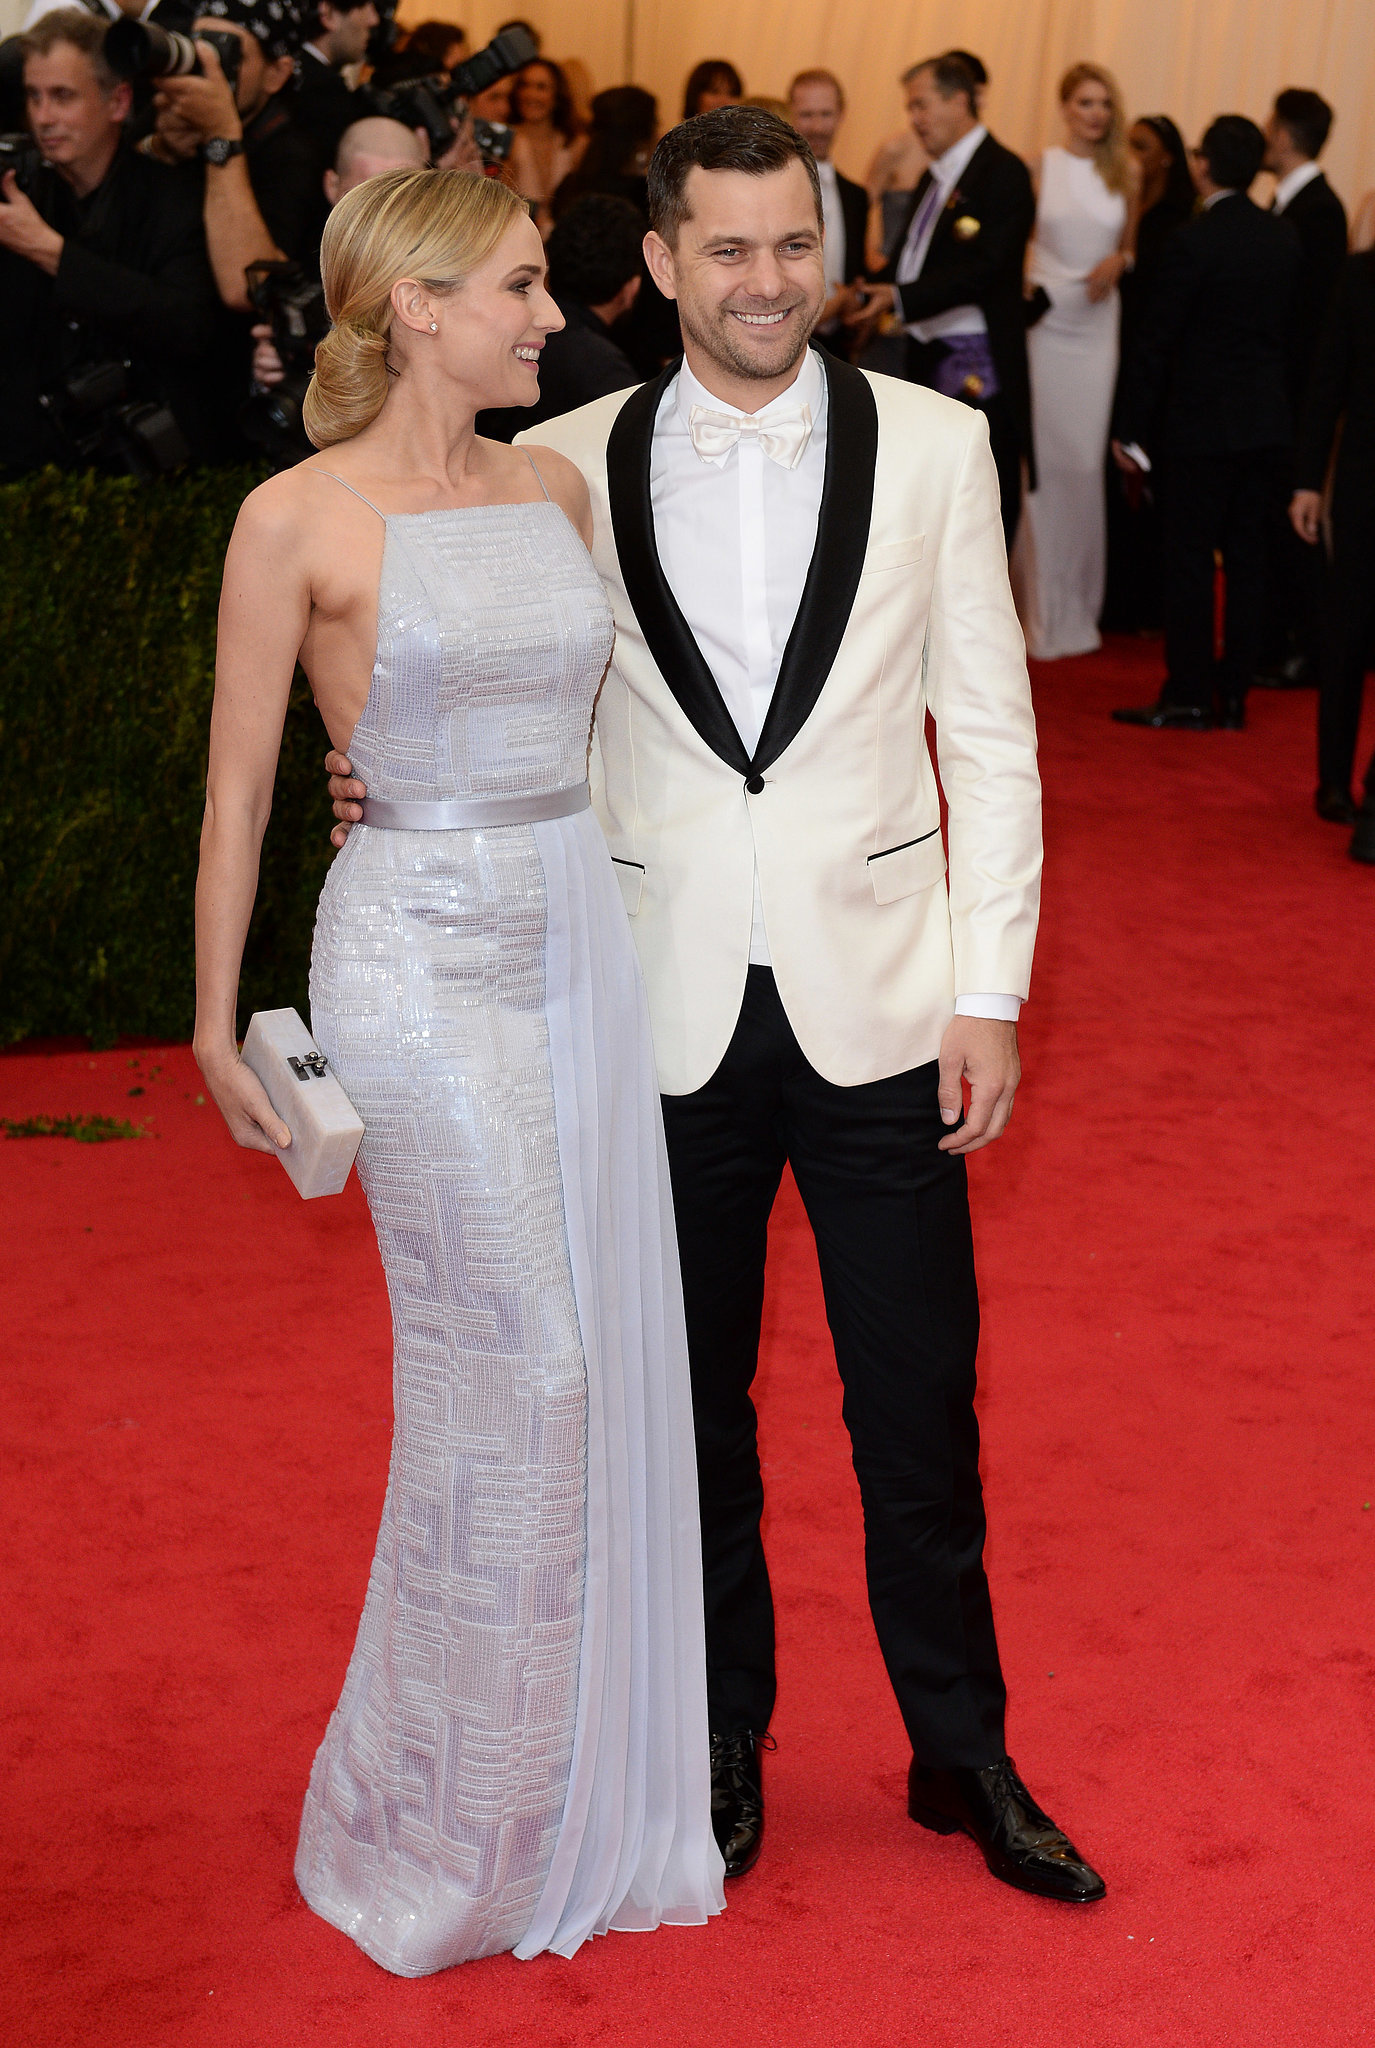 And for the record, him being half of a power couple just makes us love him more.